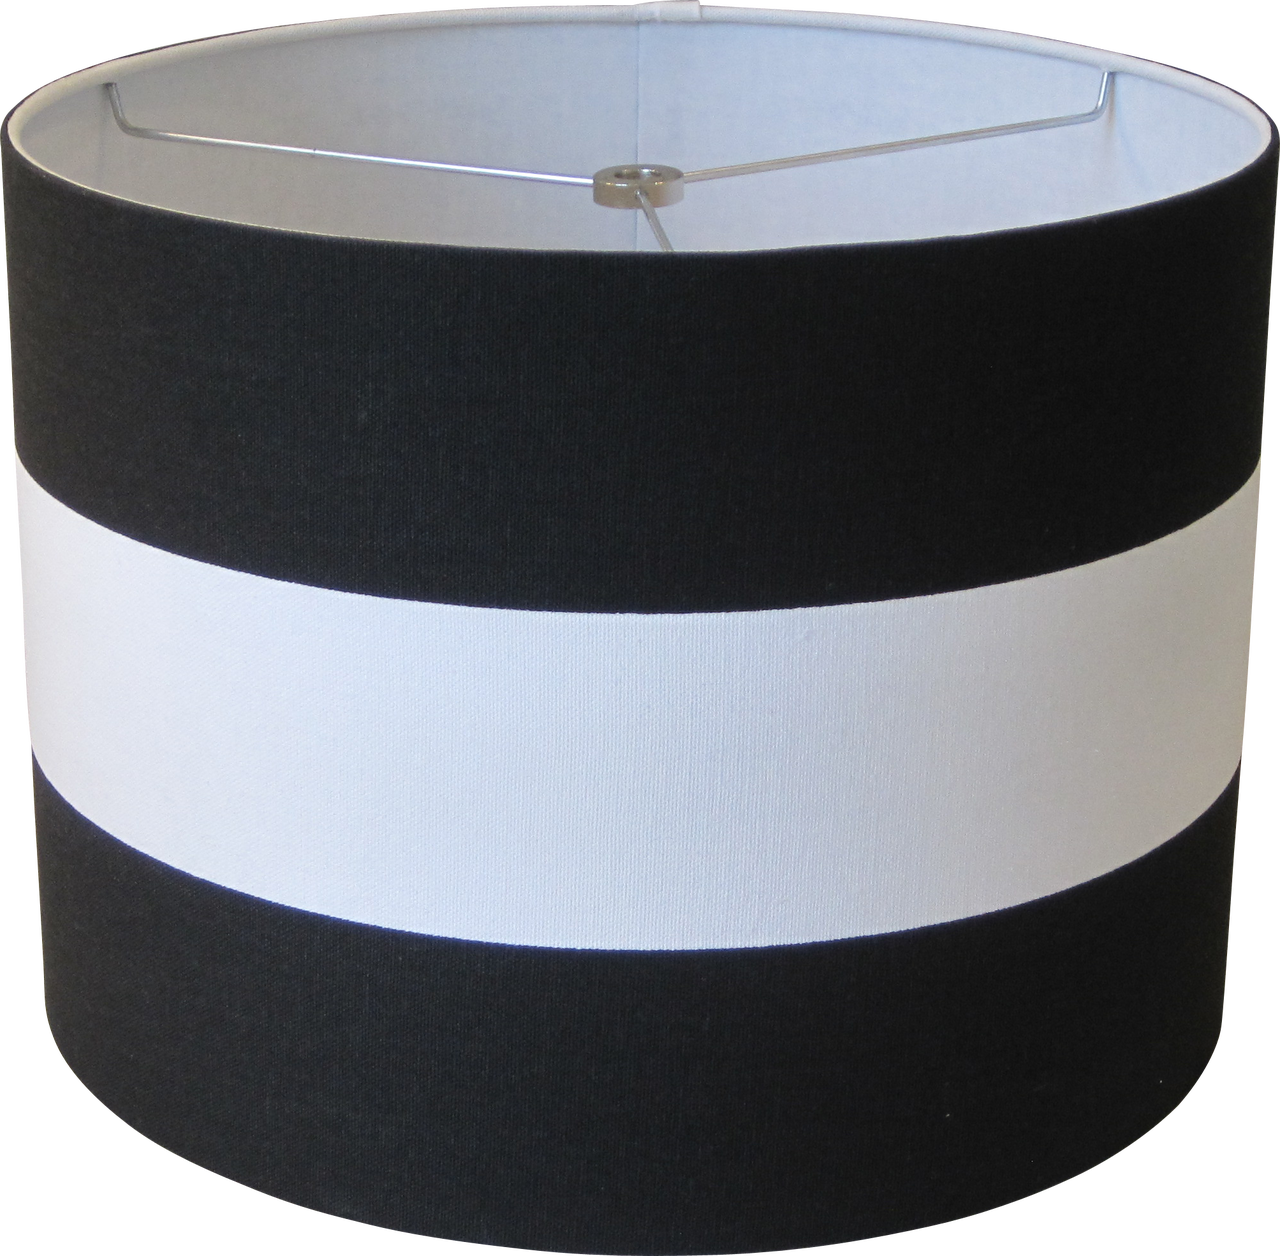 Lampshapes black and white striped lamp shade drum 8499 lampshapes black and white striped lamp shade drum 8499 with free shipping httplampshapesblack and white striped lamp shade drum aloadofball Gallery